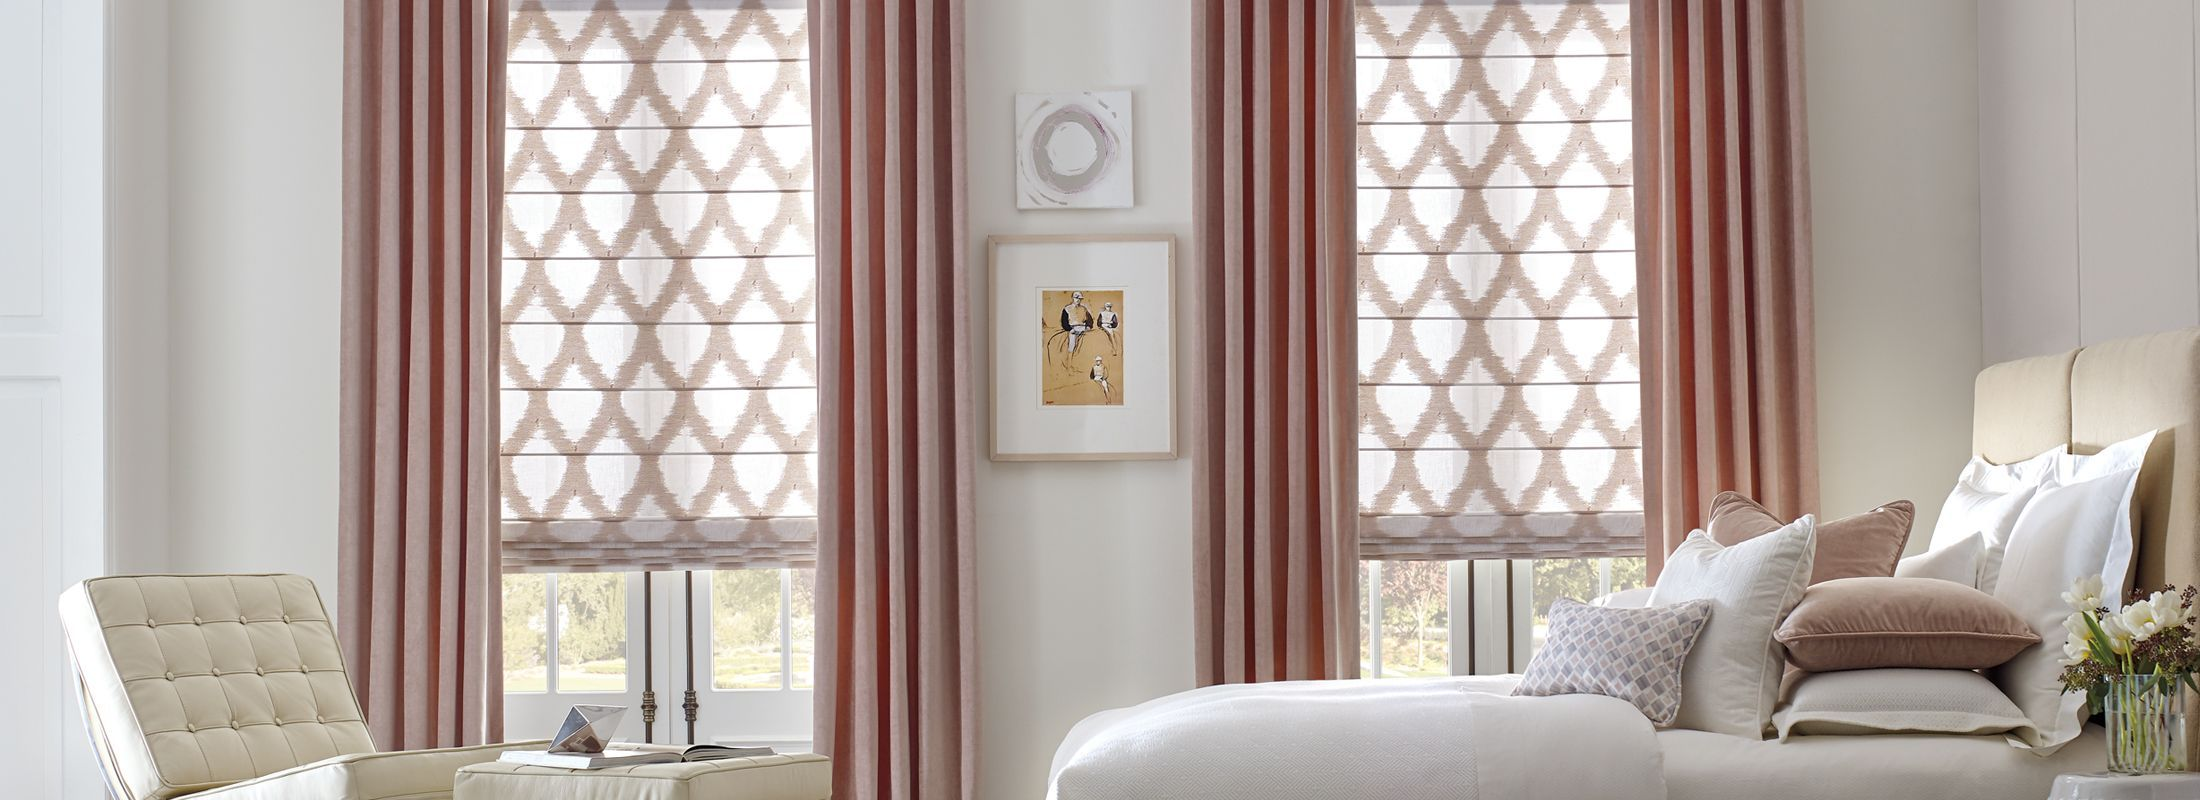 Design Studio Roman Shades in Colette Romance